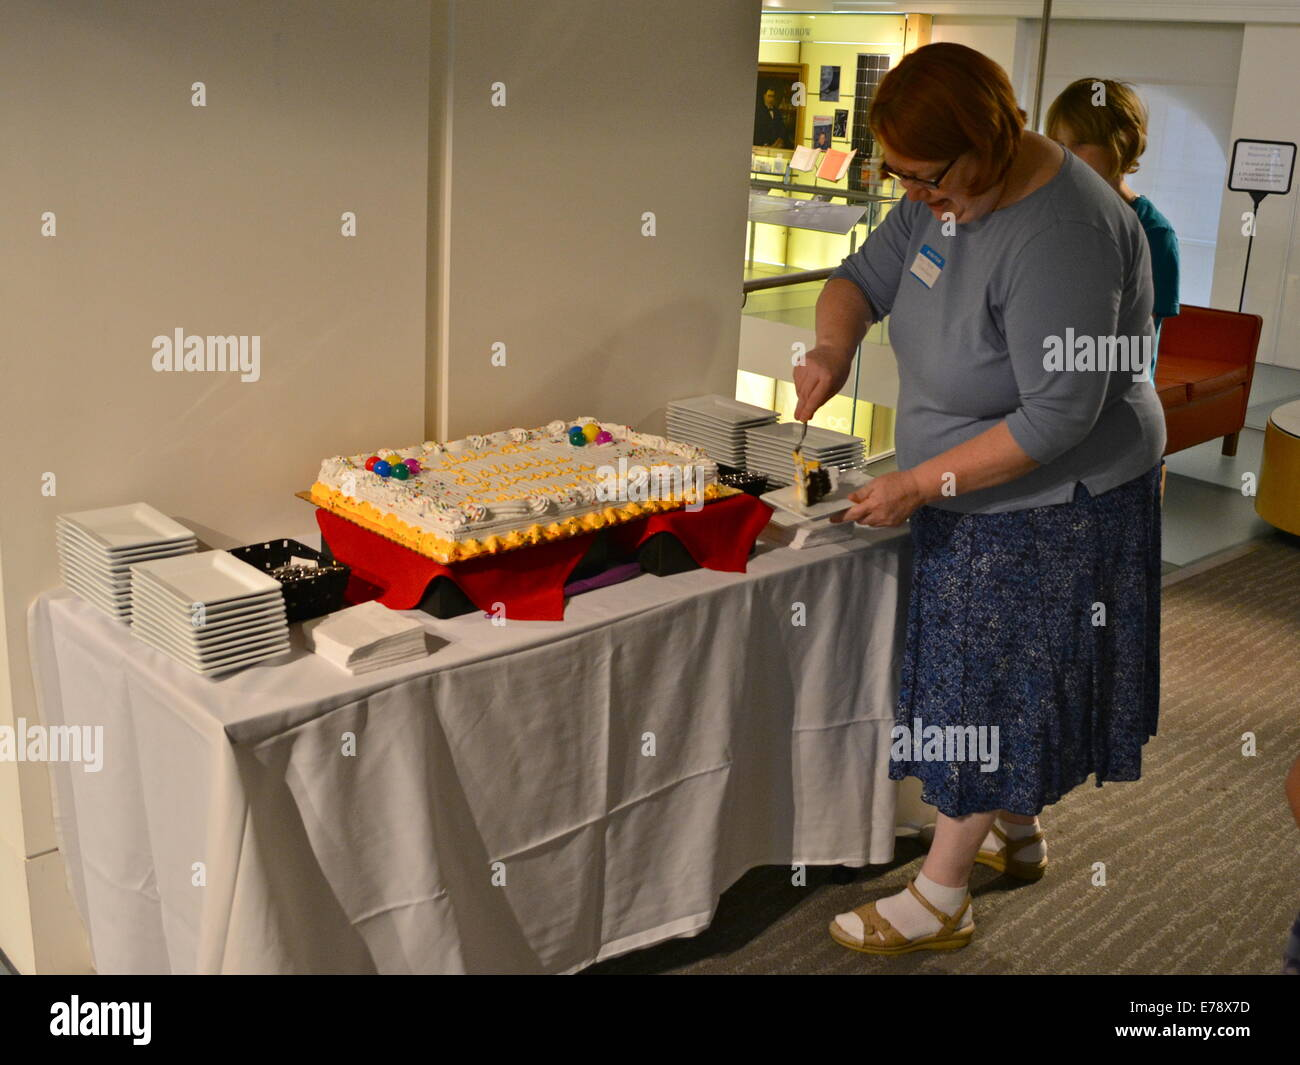 GLAM Philly Day Out Celebration. MMO edits the cake at the Chemical Heritage Foundation - Stock Image